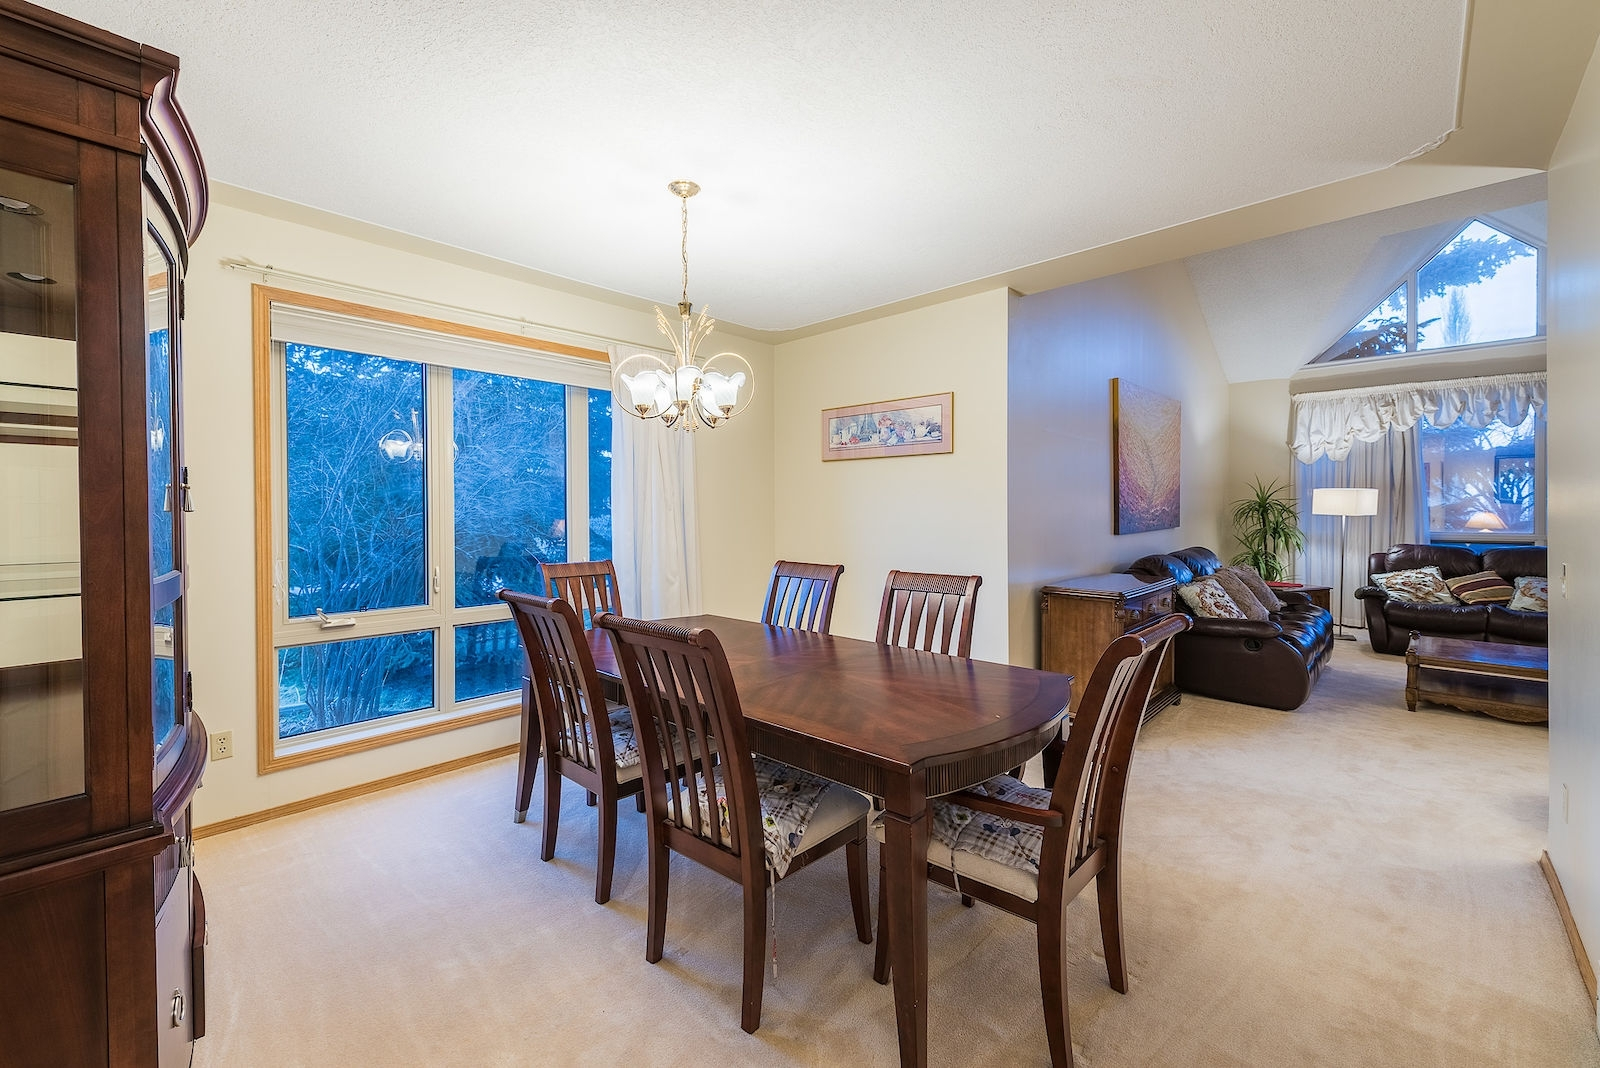 Patterson 6 Piece Dining Sets Regarding 2017 Calgary House For Rent (View 21 of 25)